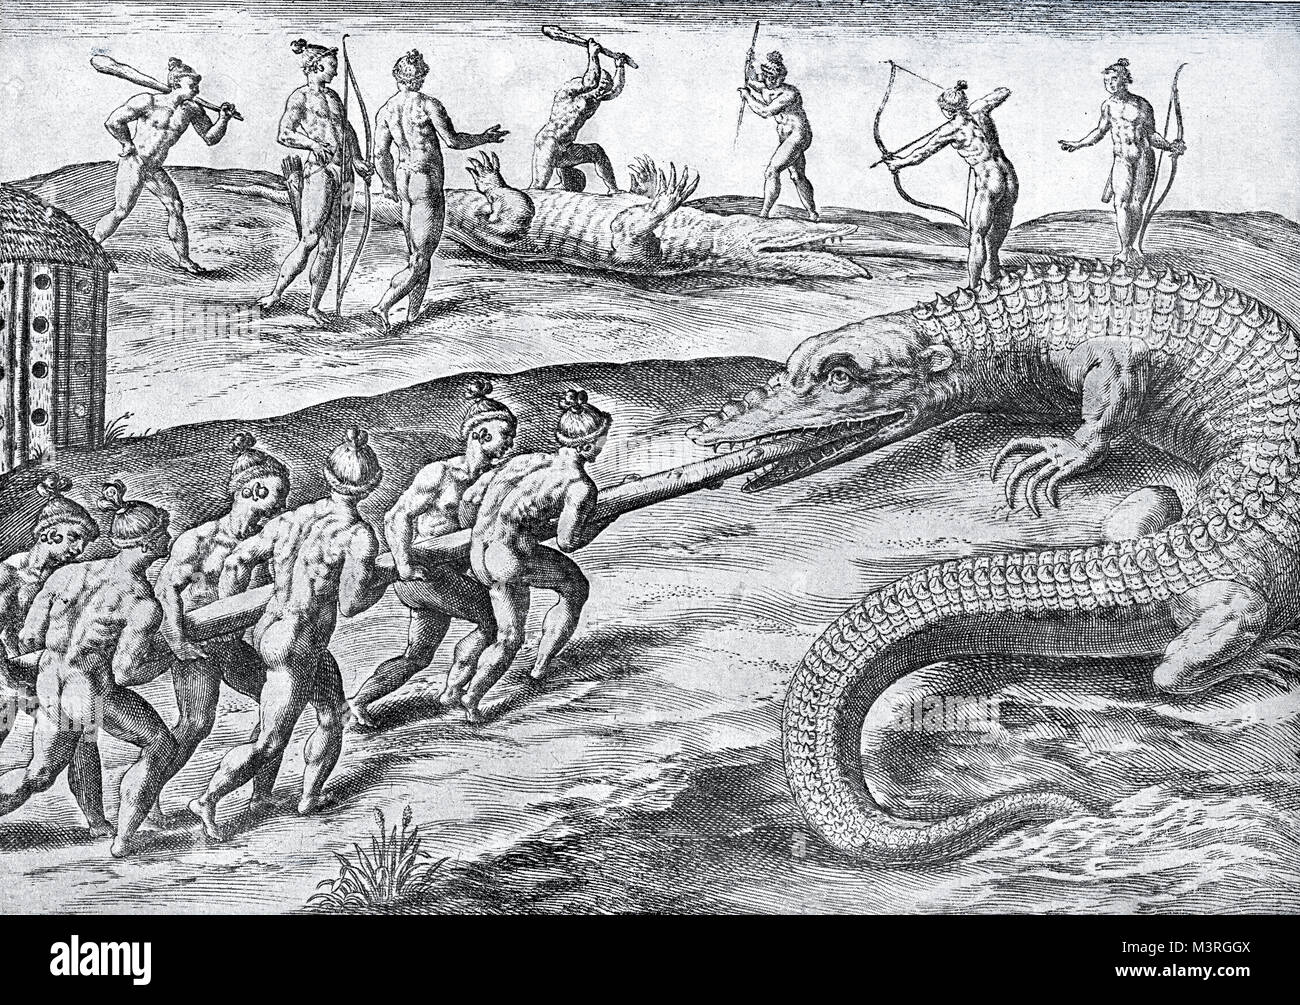 Vintage engraving of crocodile hunt from Florida natives, year 1591 - Stock Image